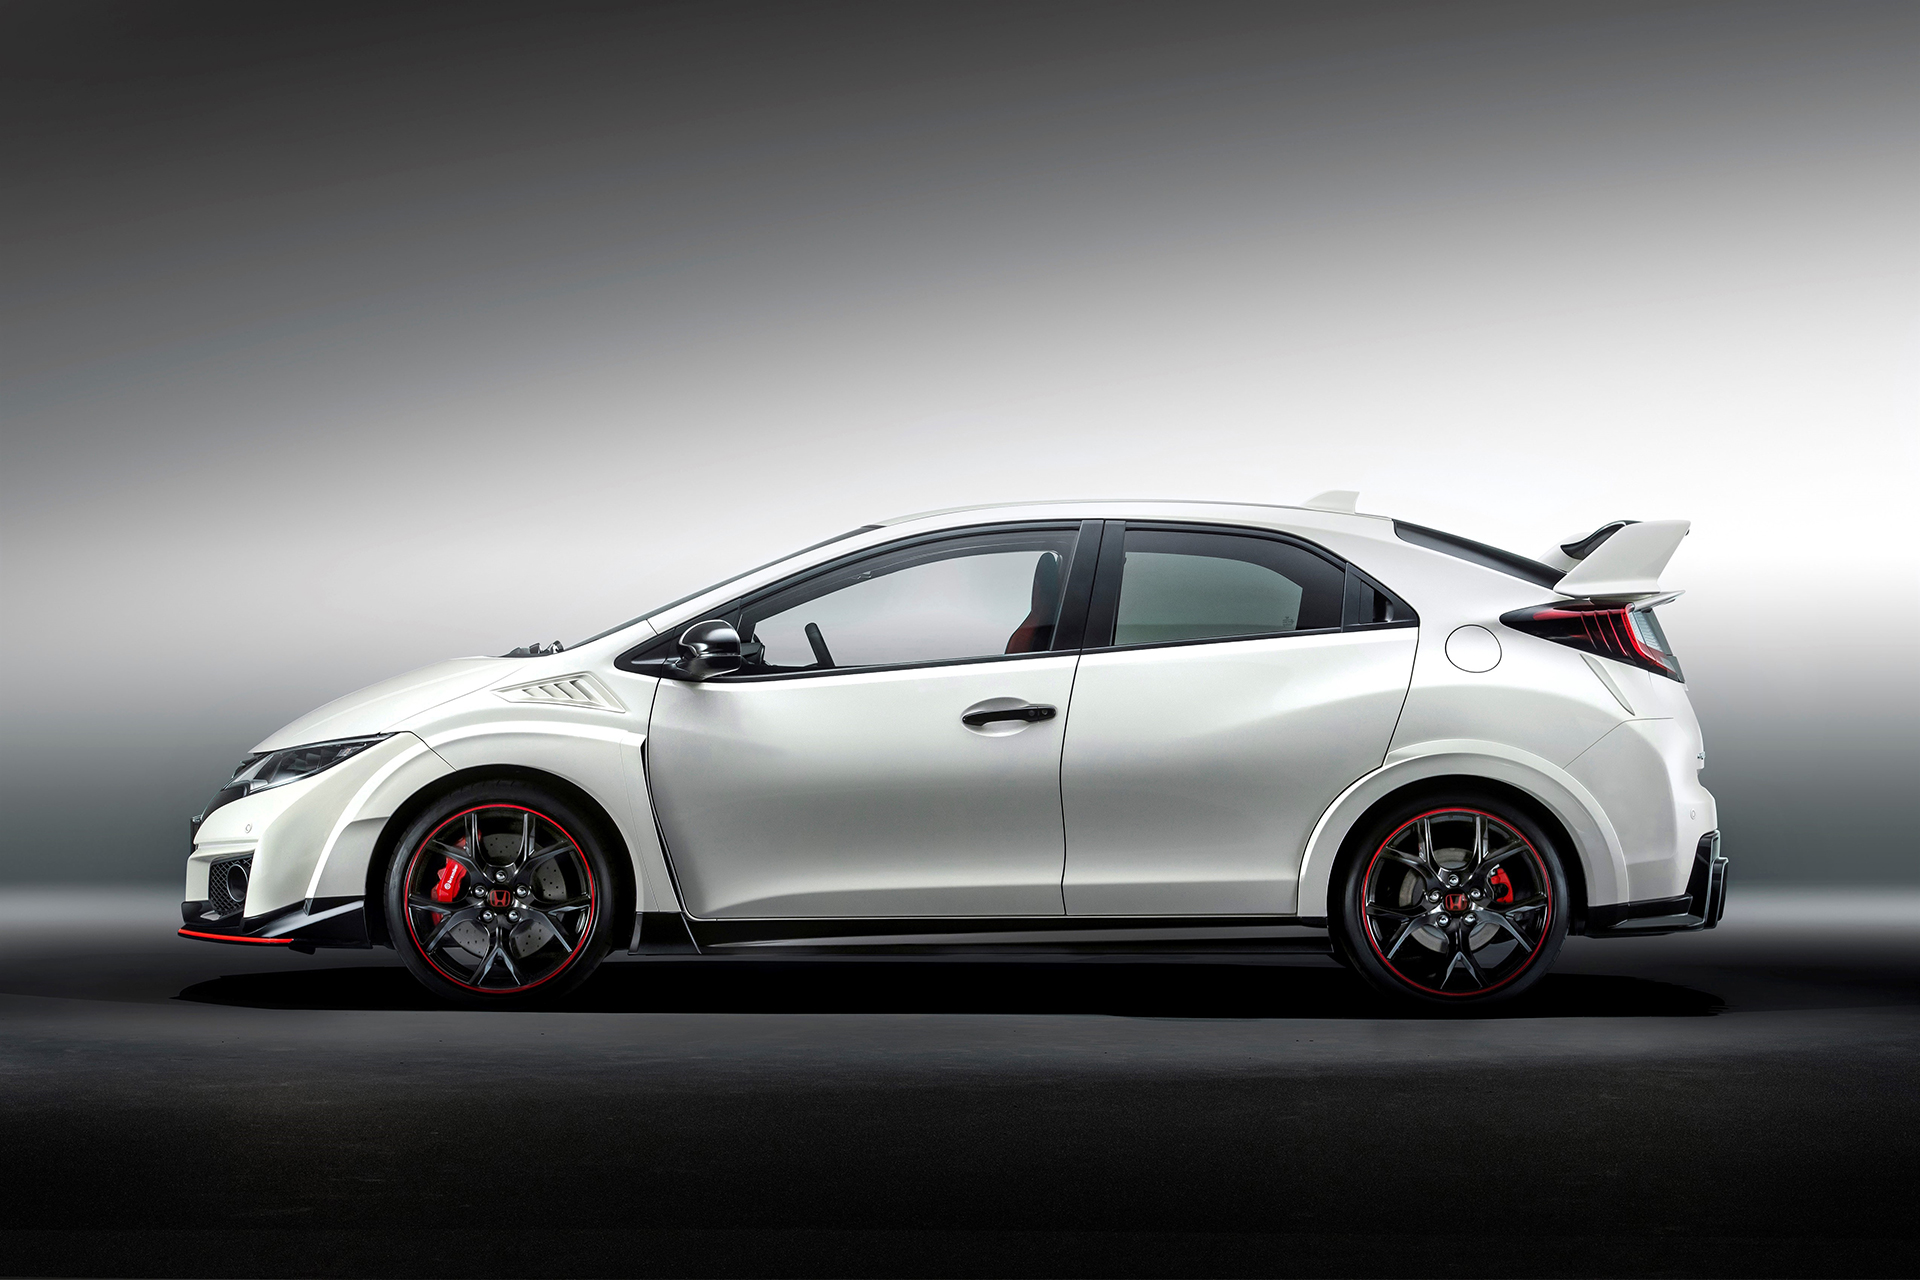 Honda Civic Type R - 2015 - side-face / profil